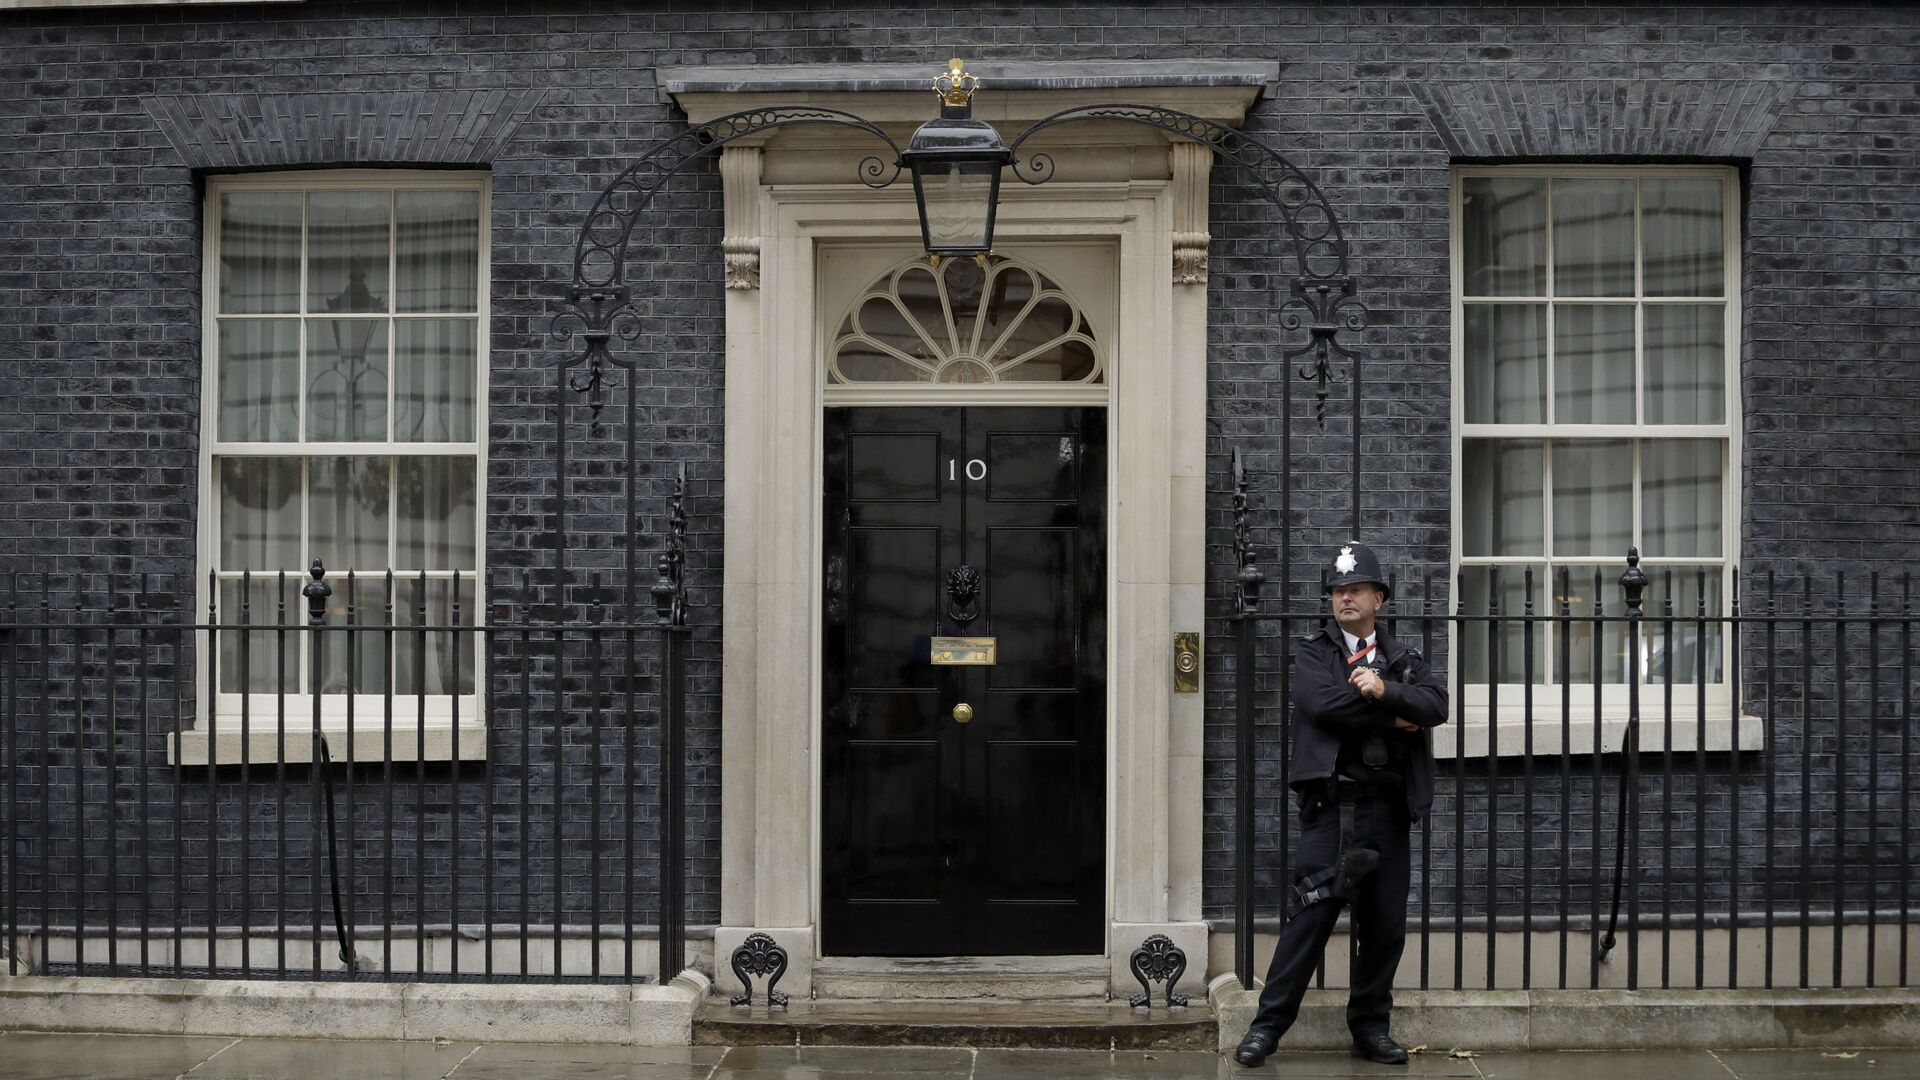 A police officer stands guard outside the door of 10 Downing Street in London, Friday, June 7, 2019 - Sputnik International, 1920, 18.09.2021